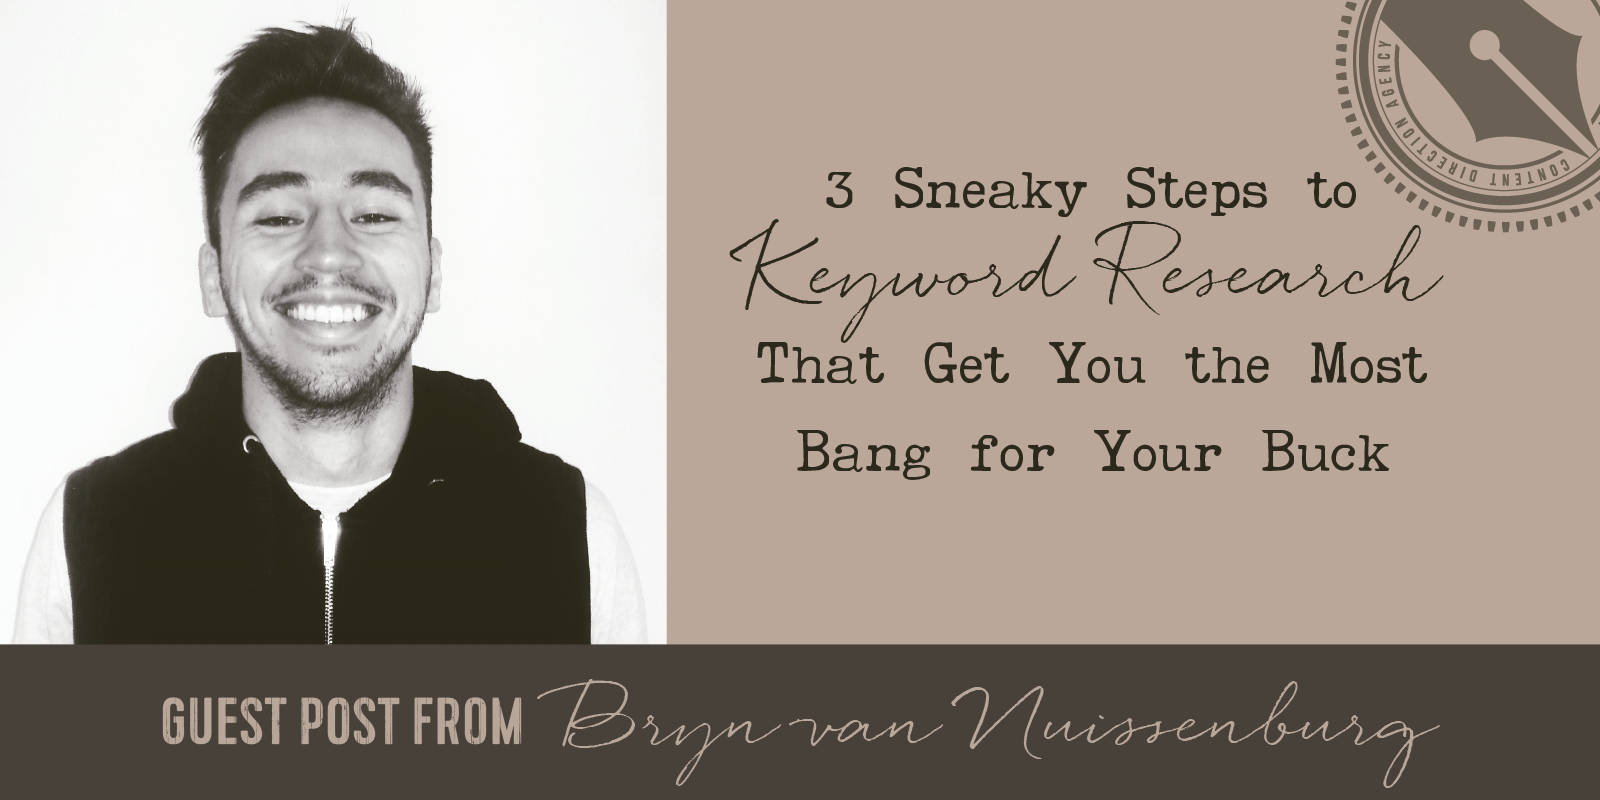 3 Sneaky Steps to Keyword Research That Get You the Most Bang for